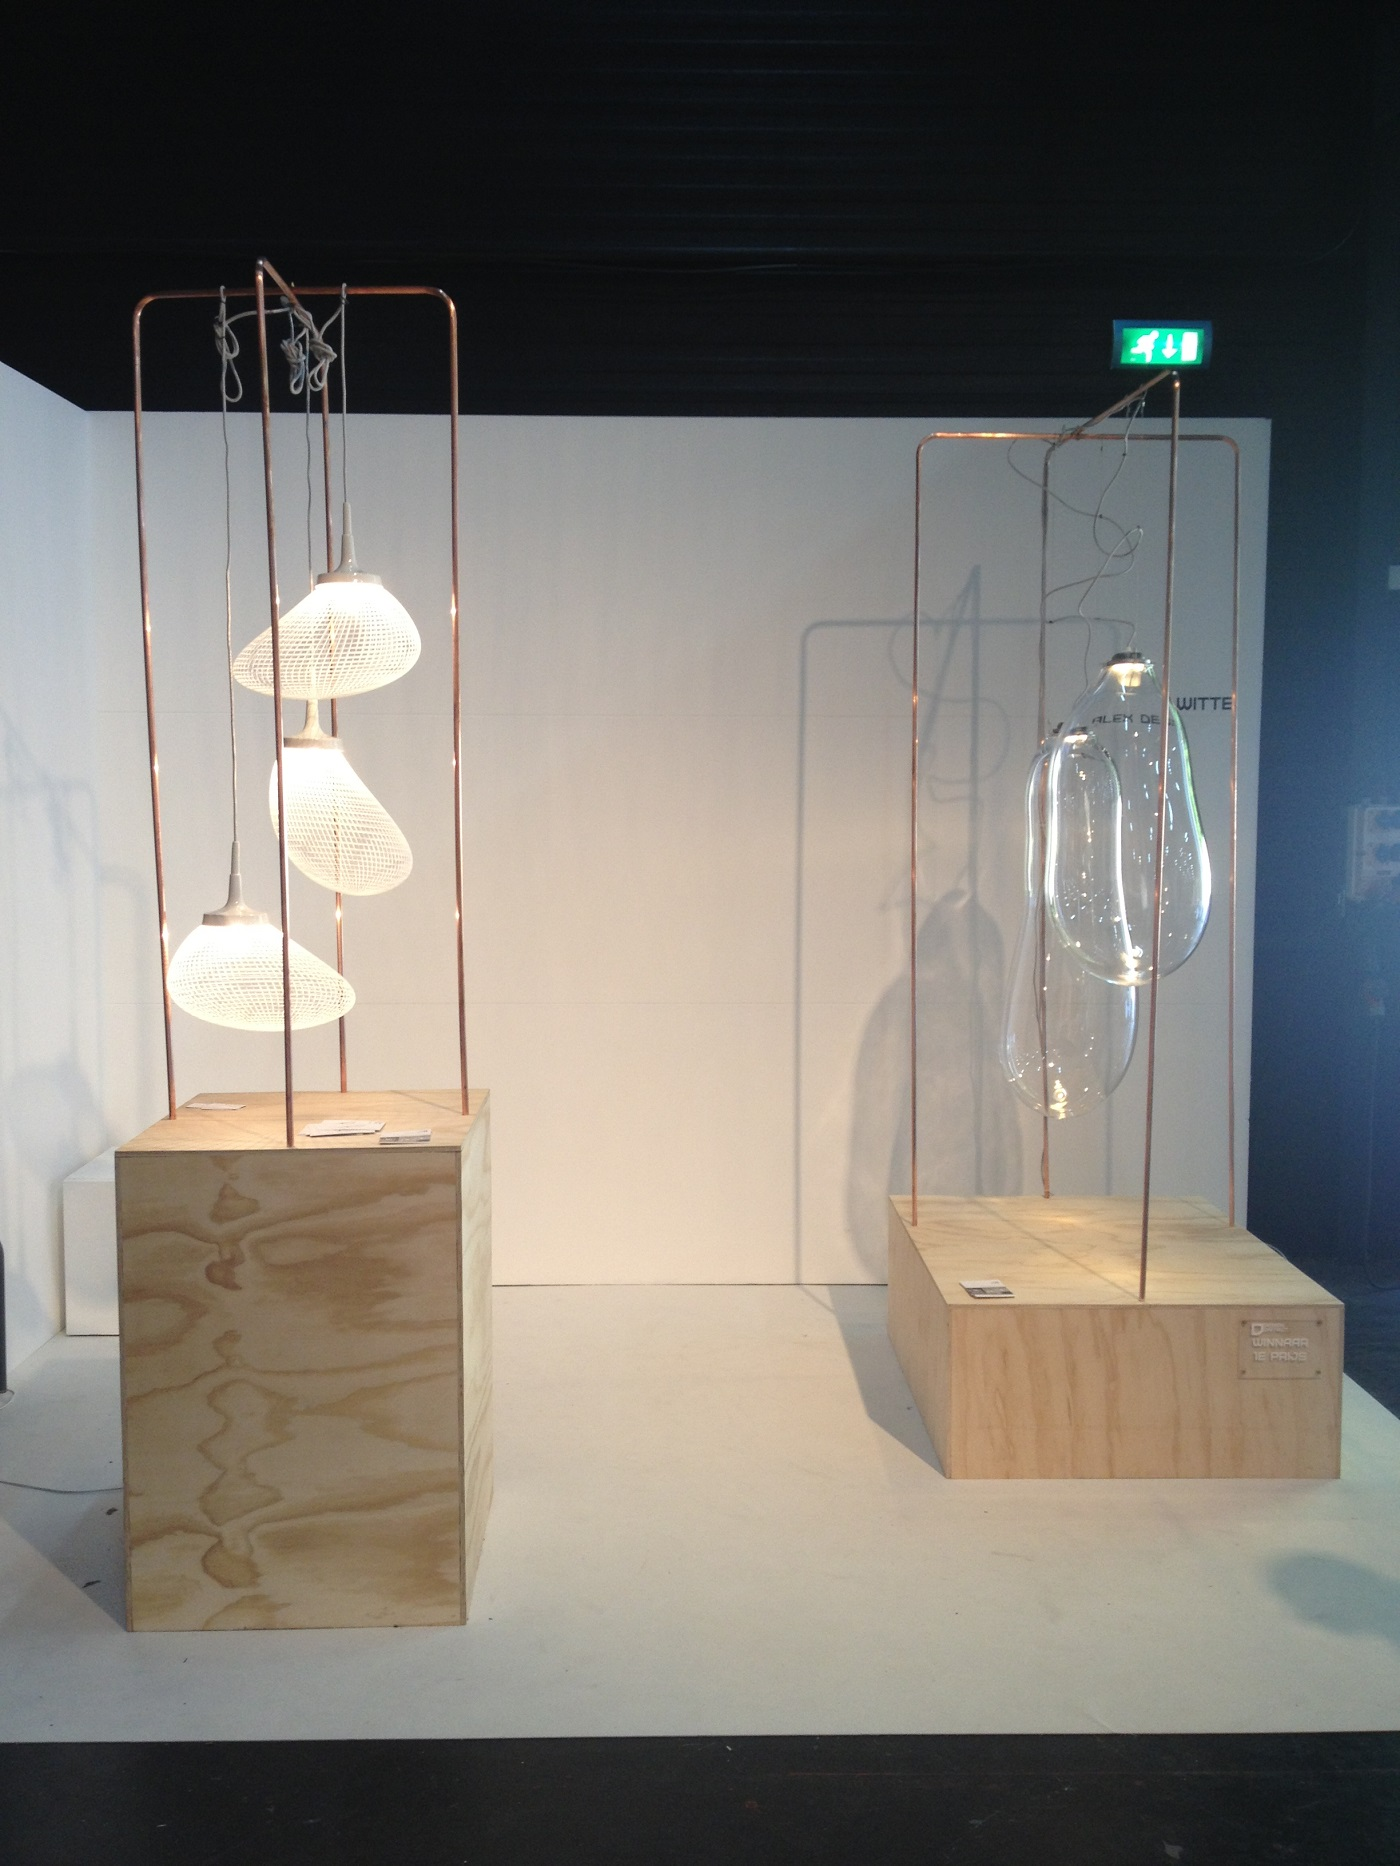 Expositie Design District lampen Light Breeze en The Big Bubble van Alex de Witte